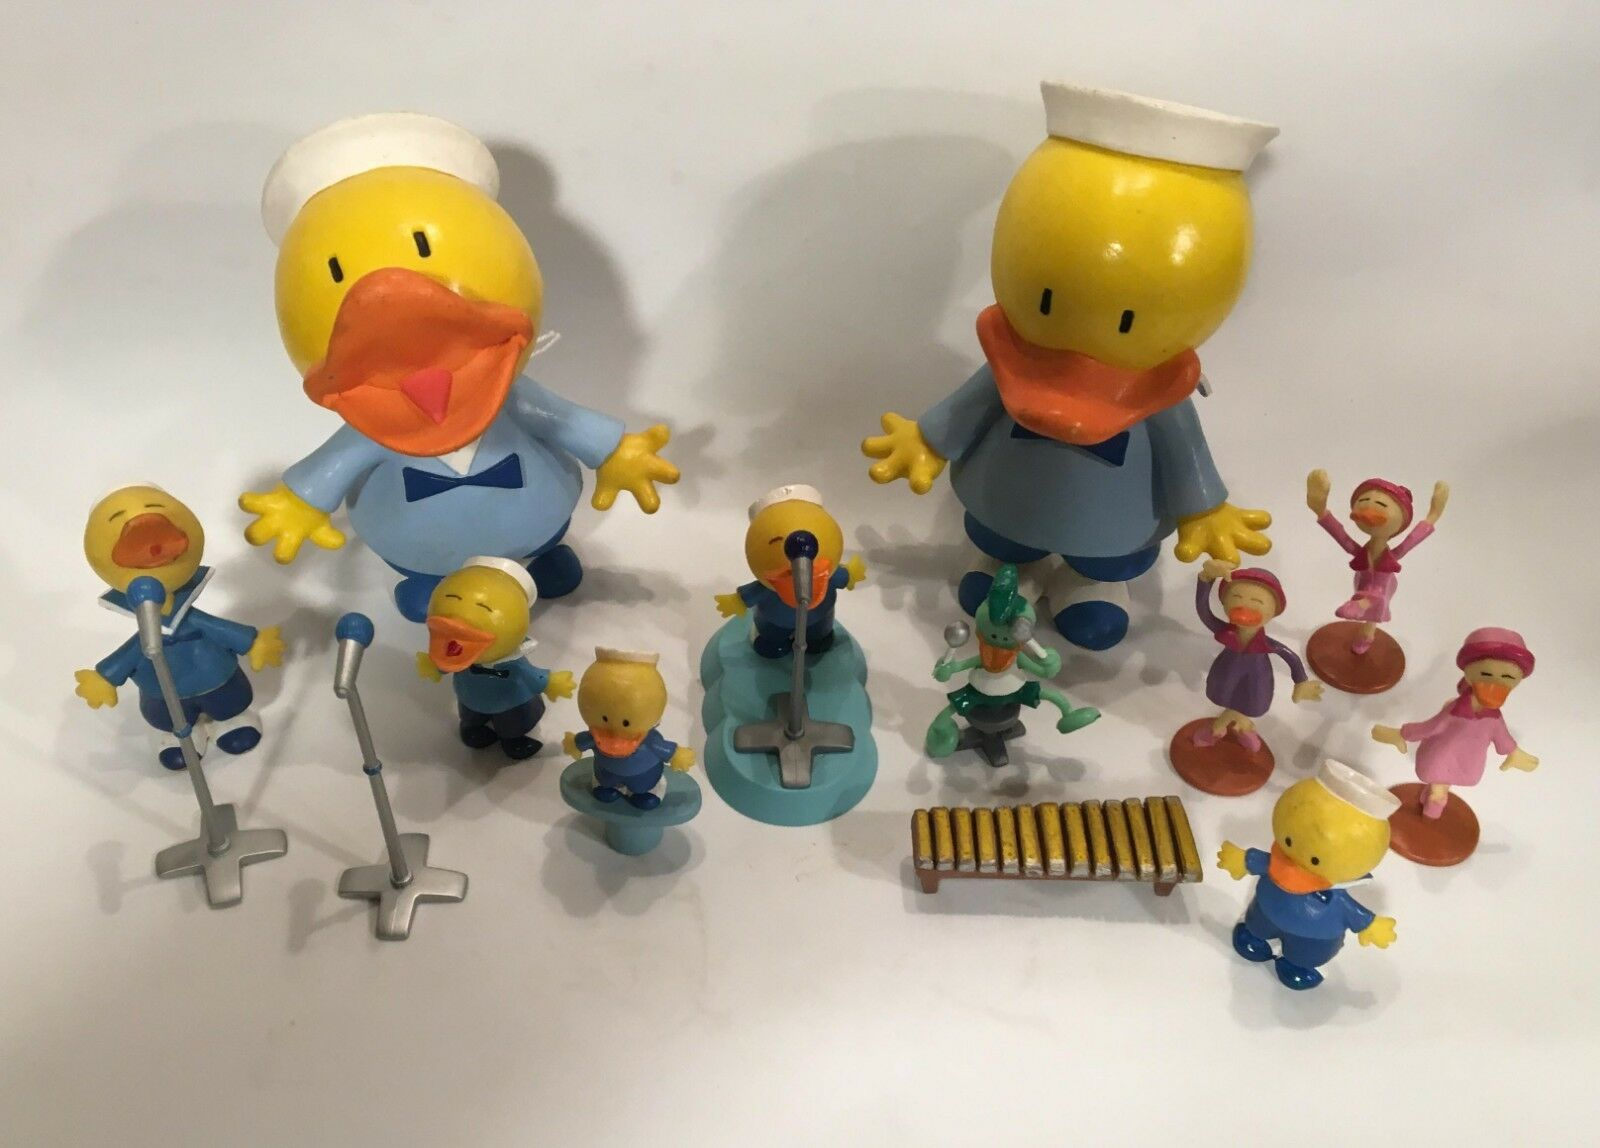 Rare LITTLE DUCKS (Os Patinhos) 11 11 11 PVC FIGURES MAIA & BORGES FIPLA PORTUGAL 1999 a1e236